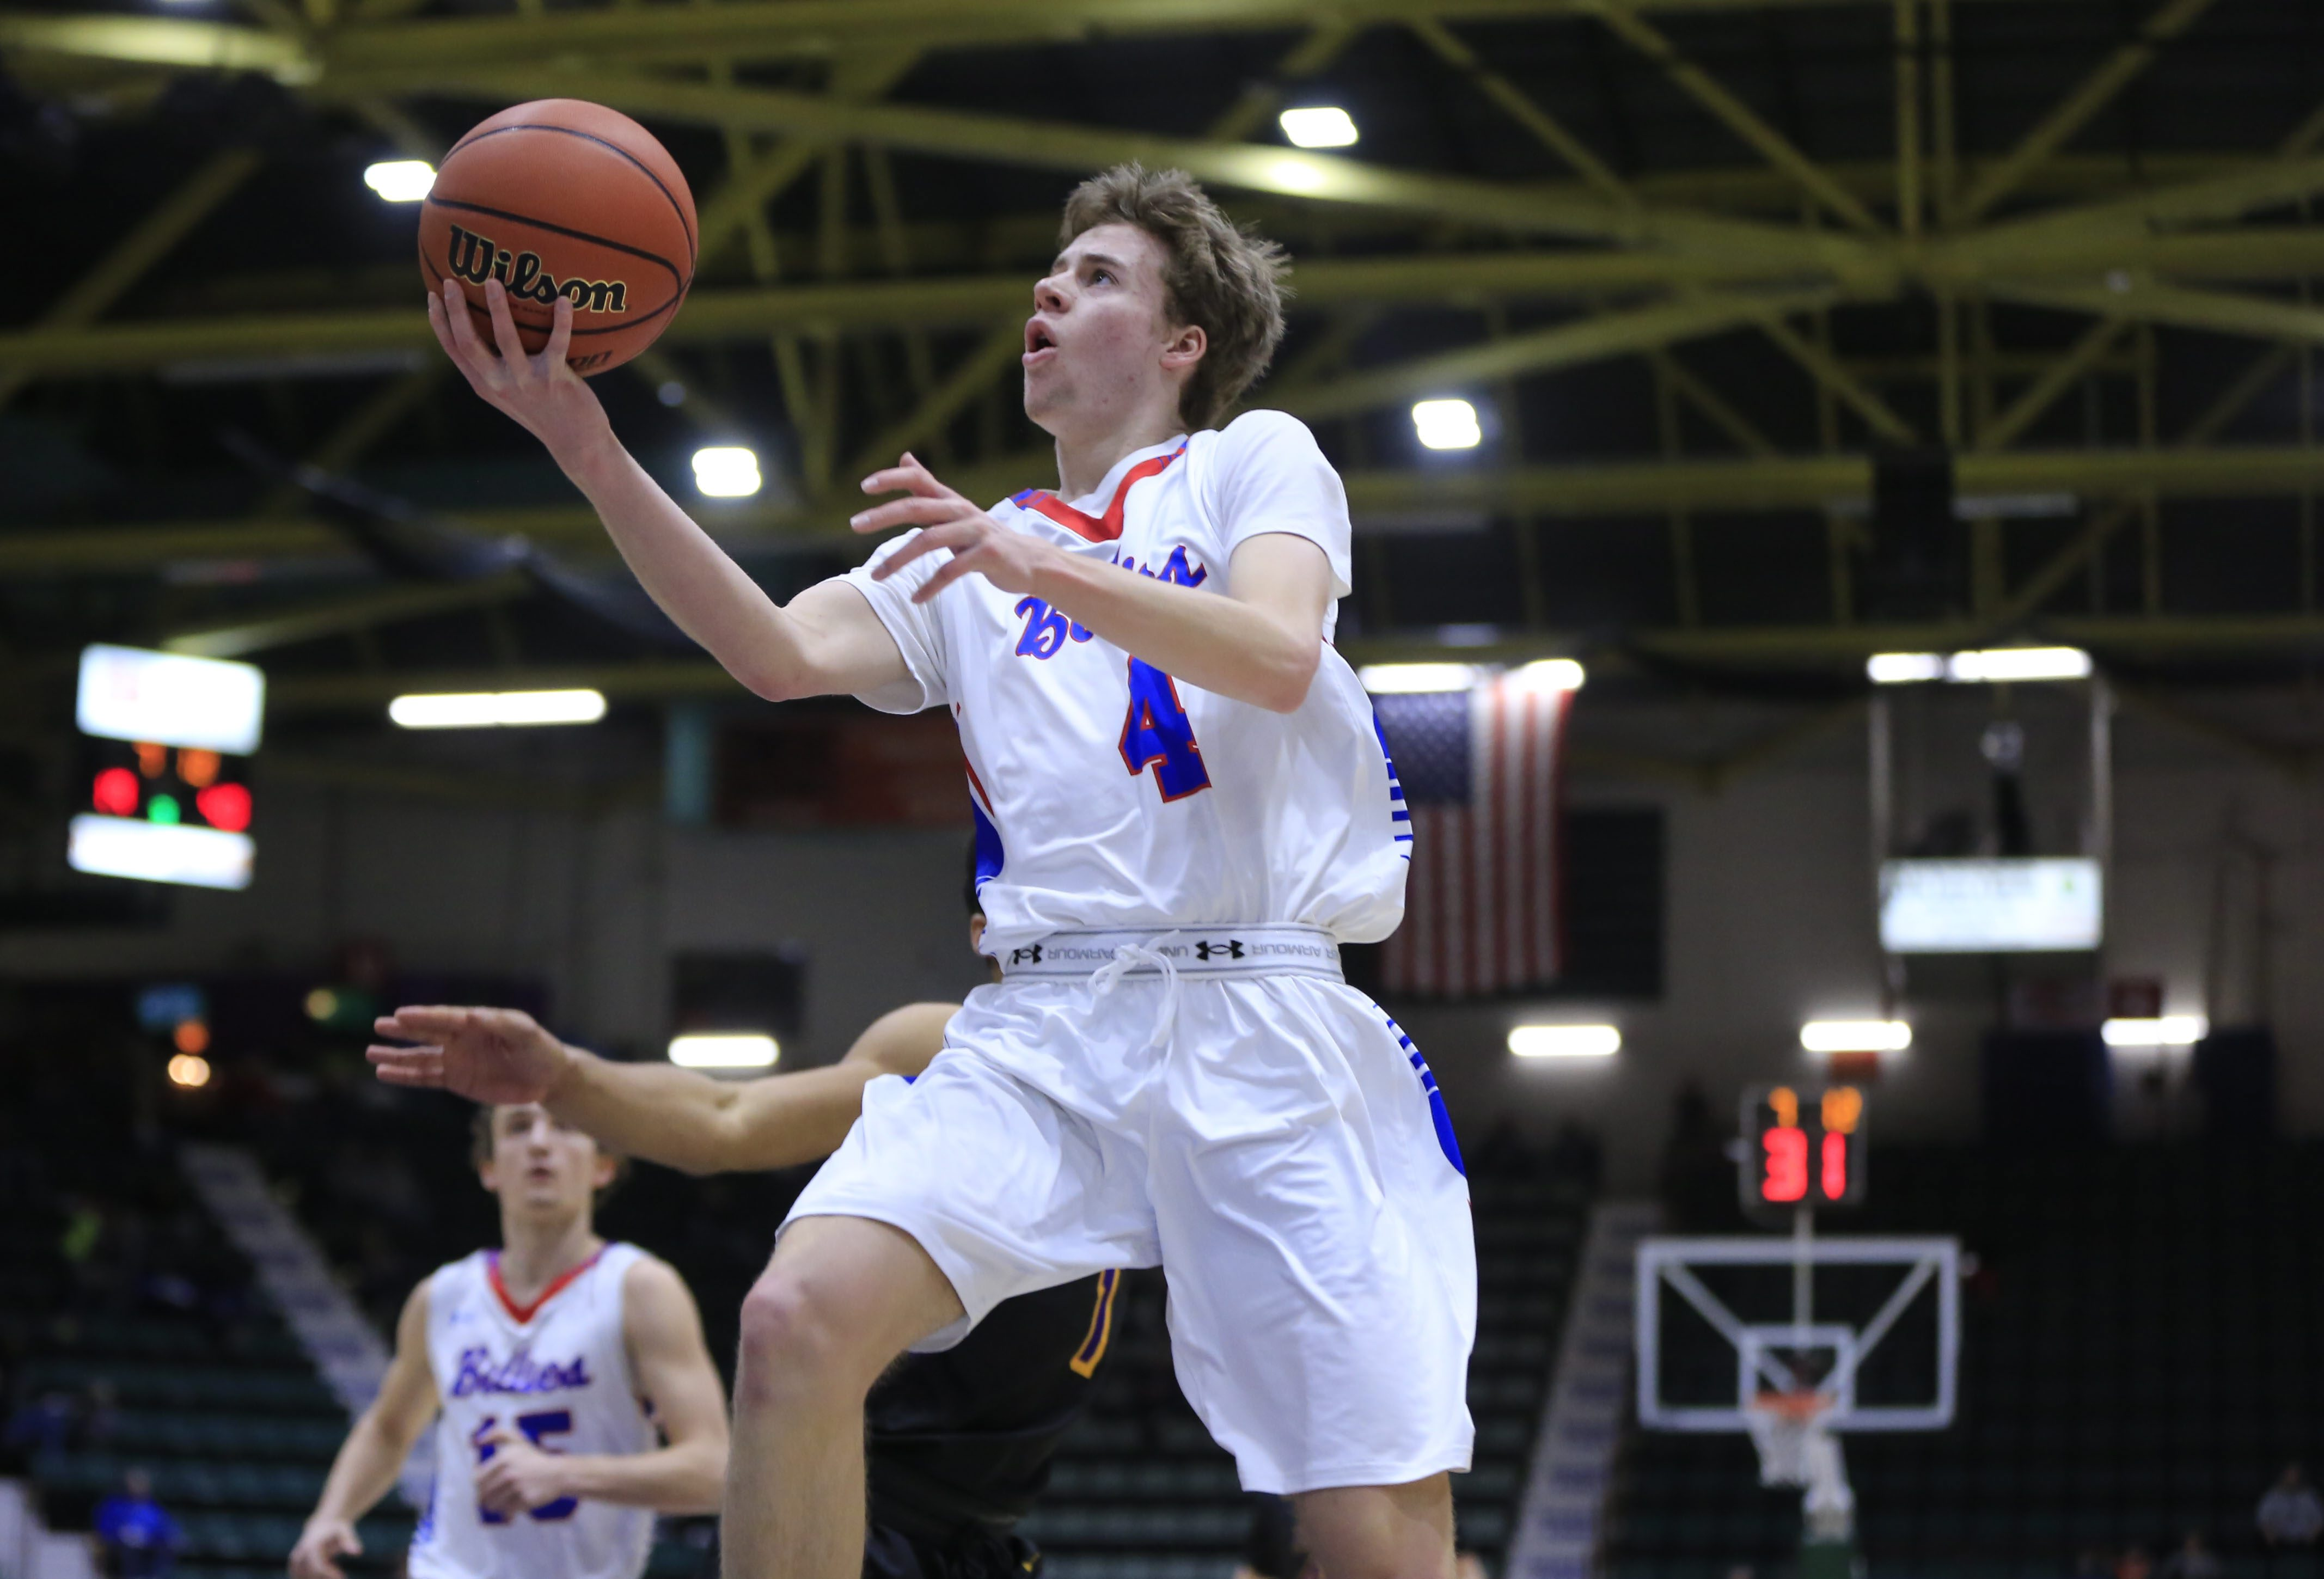 Williamsville South's Greg Dolan iis among the standouts from the just completed basketball postseason. (Harry Scull Jr./Buffalo News)